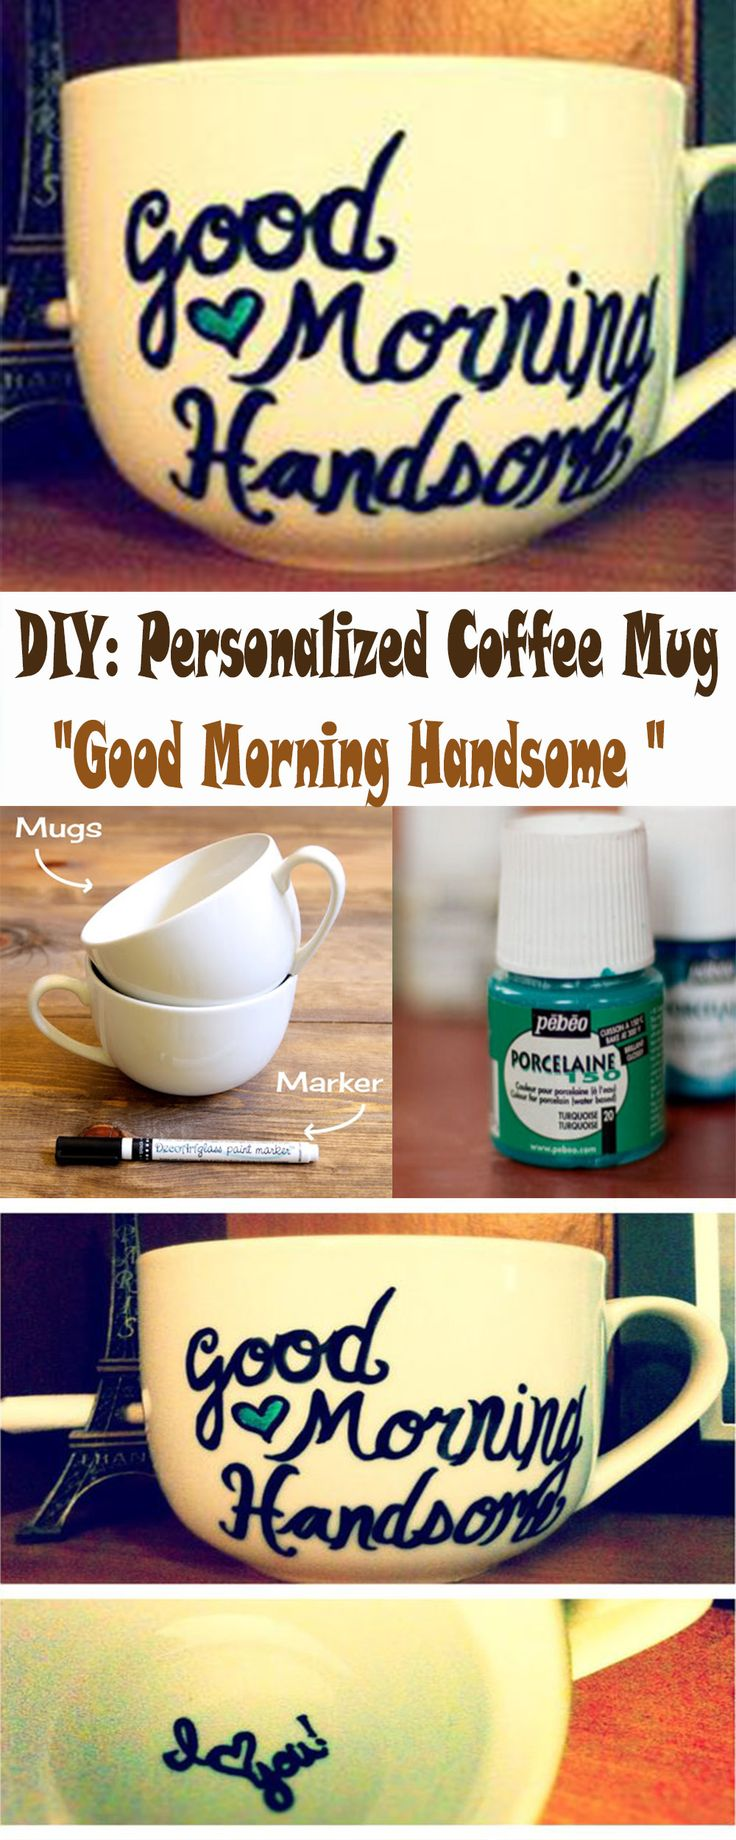 best 25 personalized coffee mugs ideas on pinterest diy. Black Bedroom Furniture Sets. Home Design Ideas